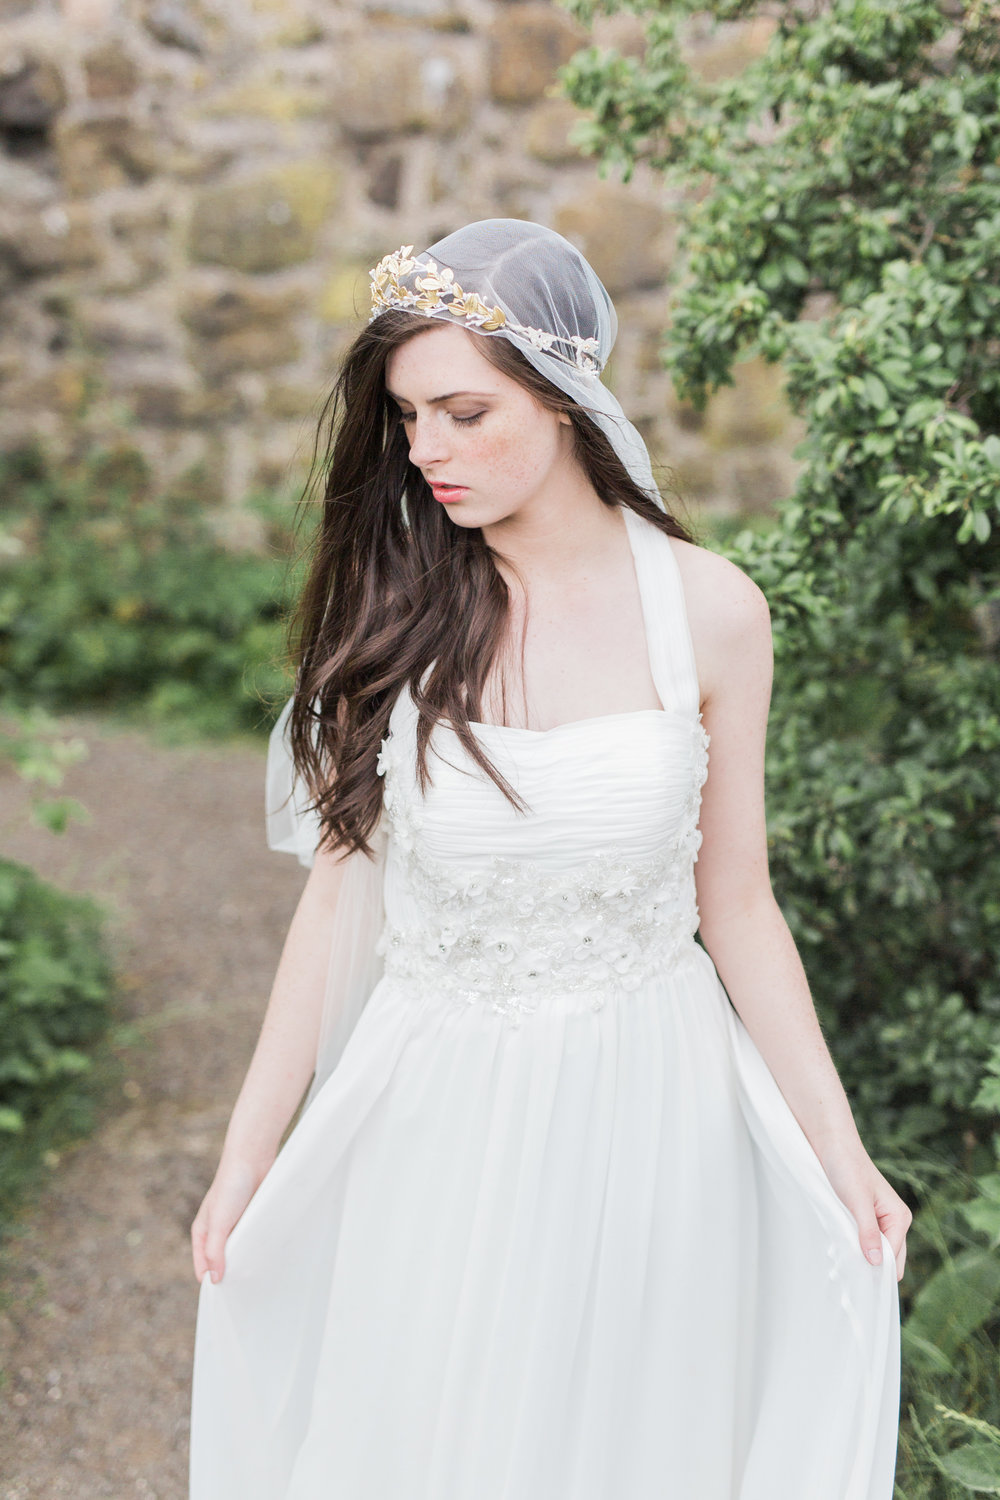 suzanne_li_photography_BRIDAL_SHOOT_SCOTLAND-12.jpg